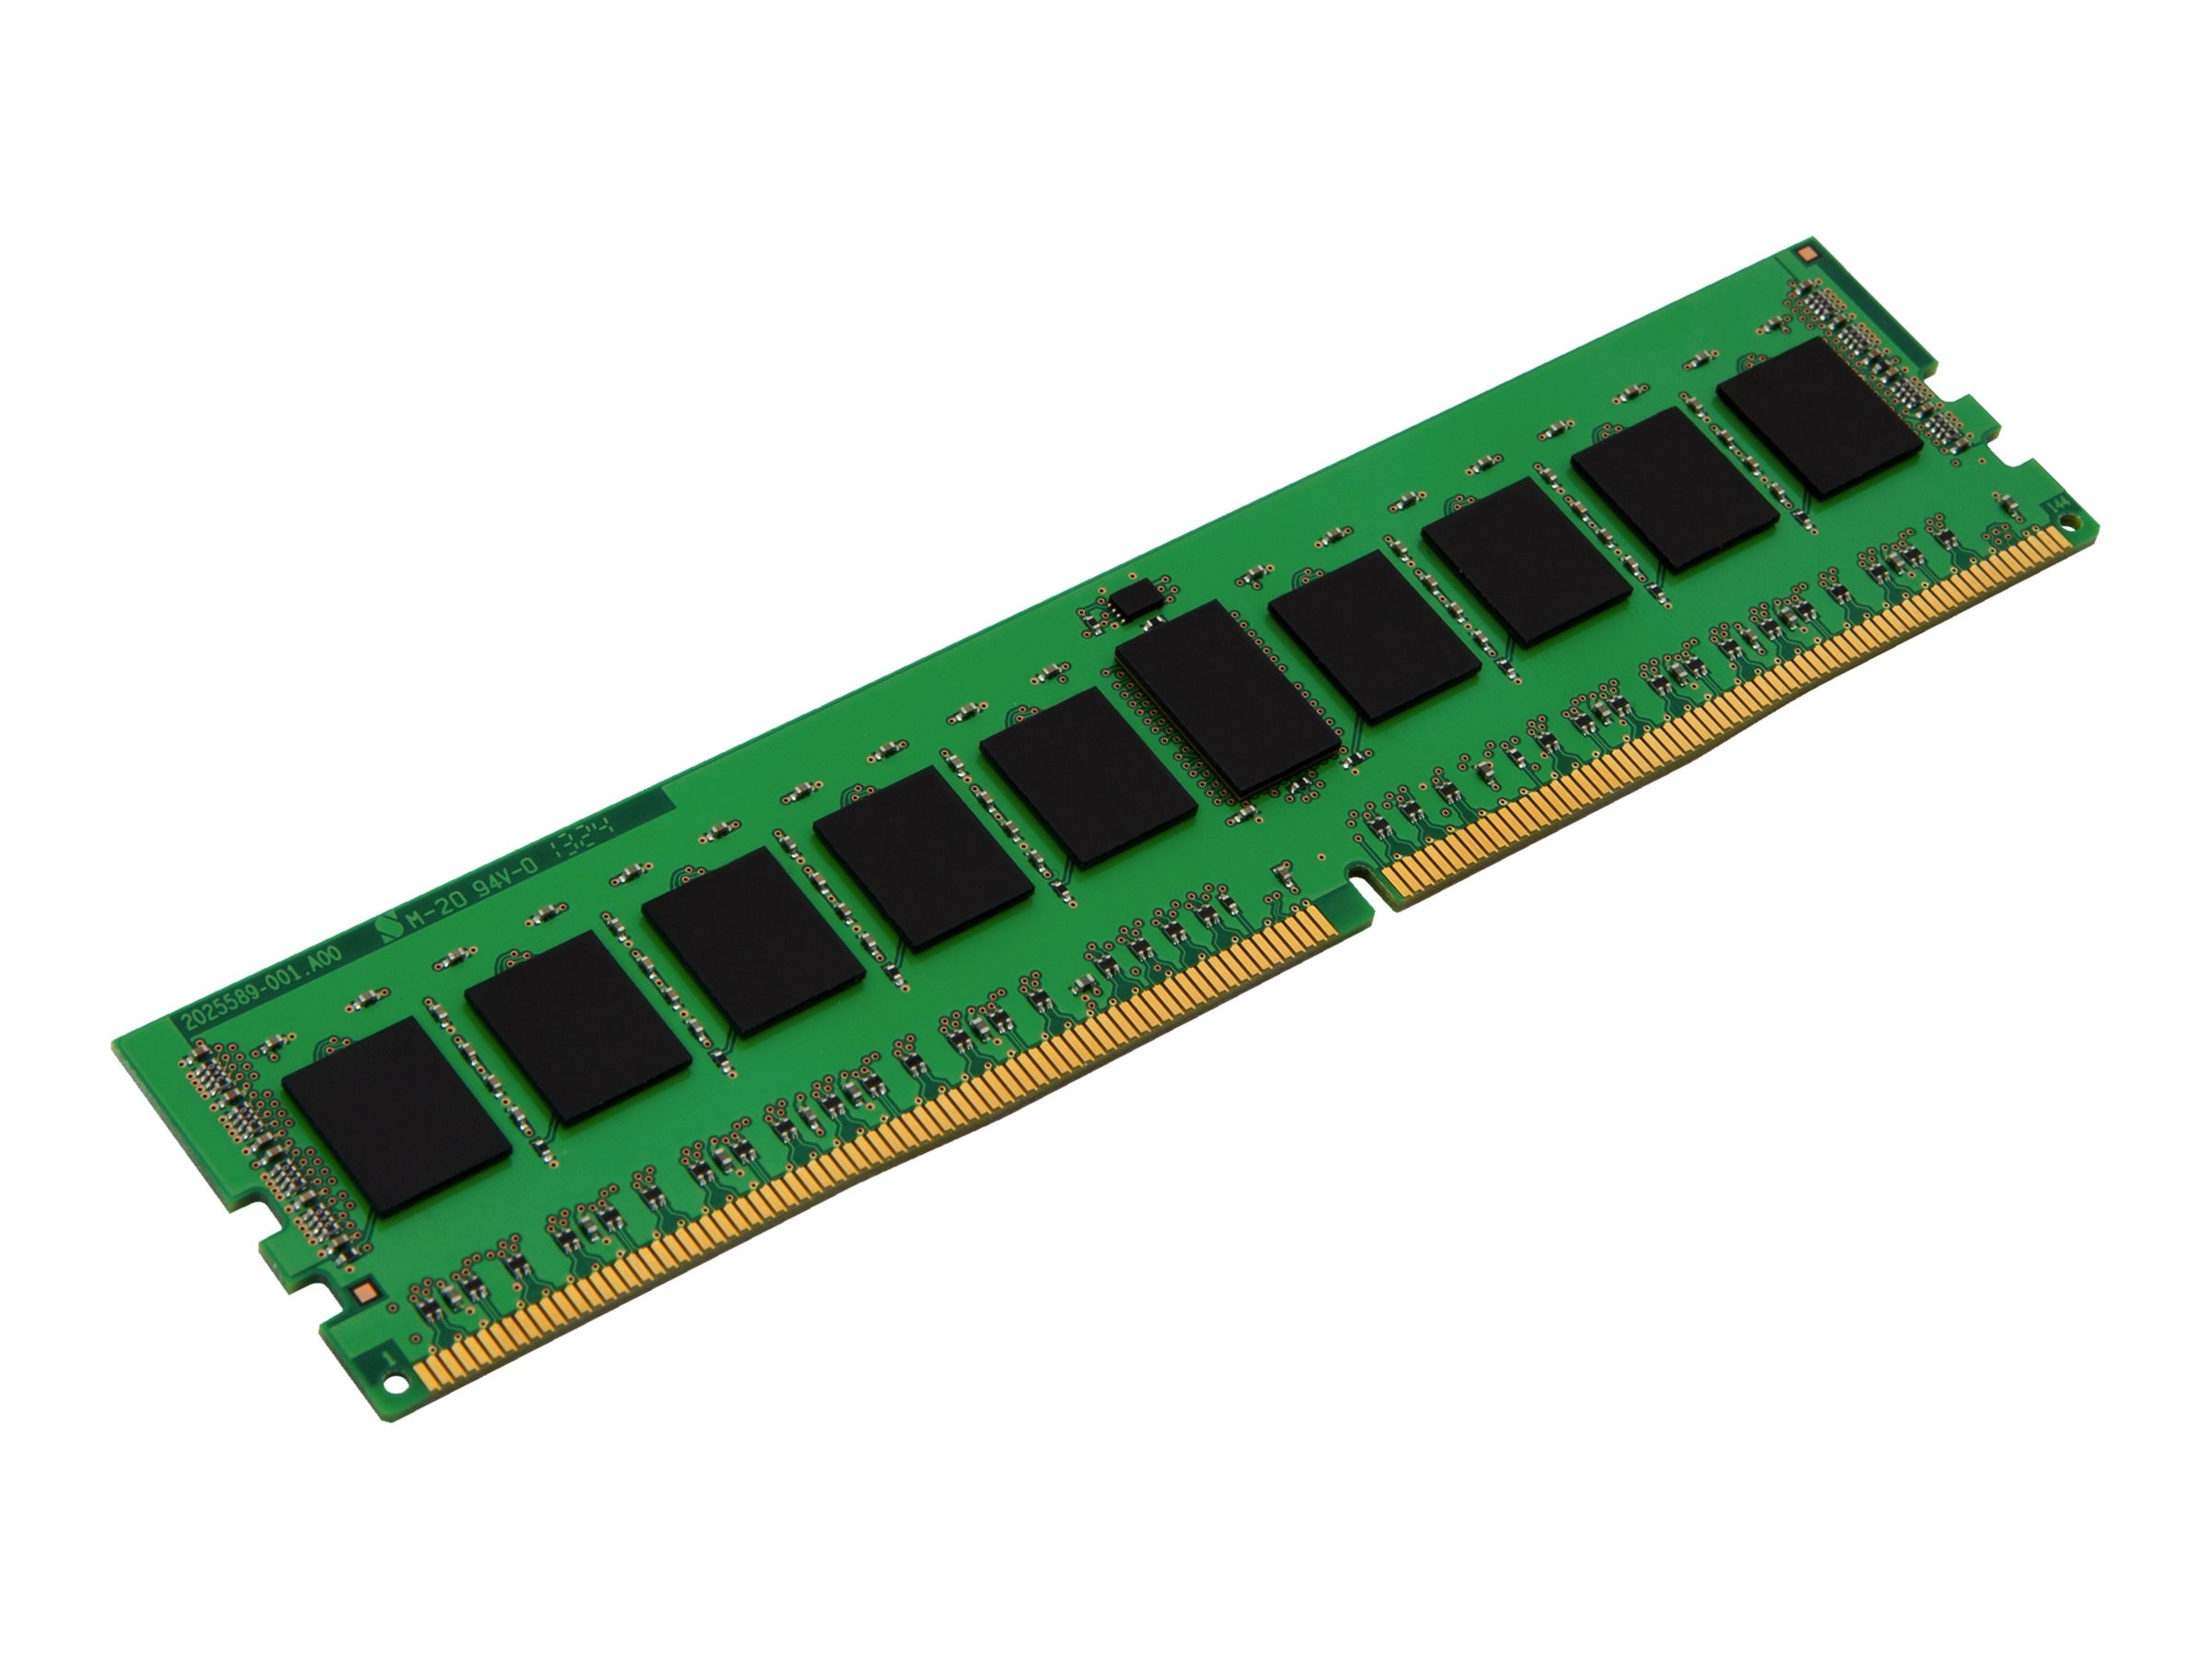 Kingston 16GB PC4-19200 288-pin DDR4 SDRAM DIMM for Select Models